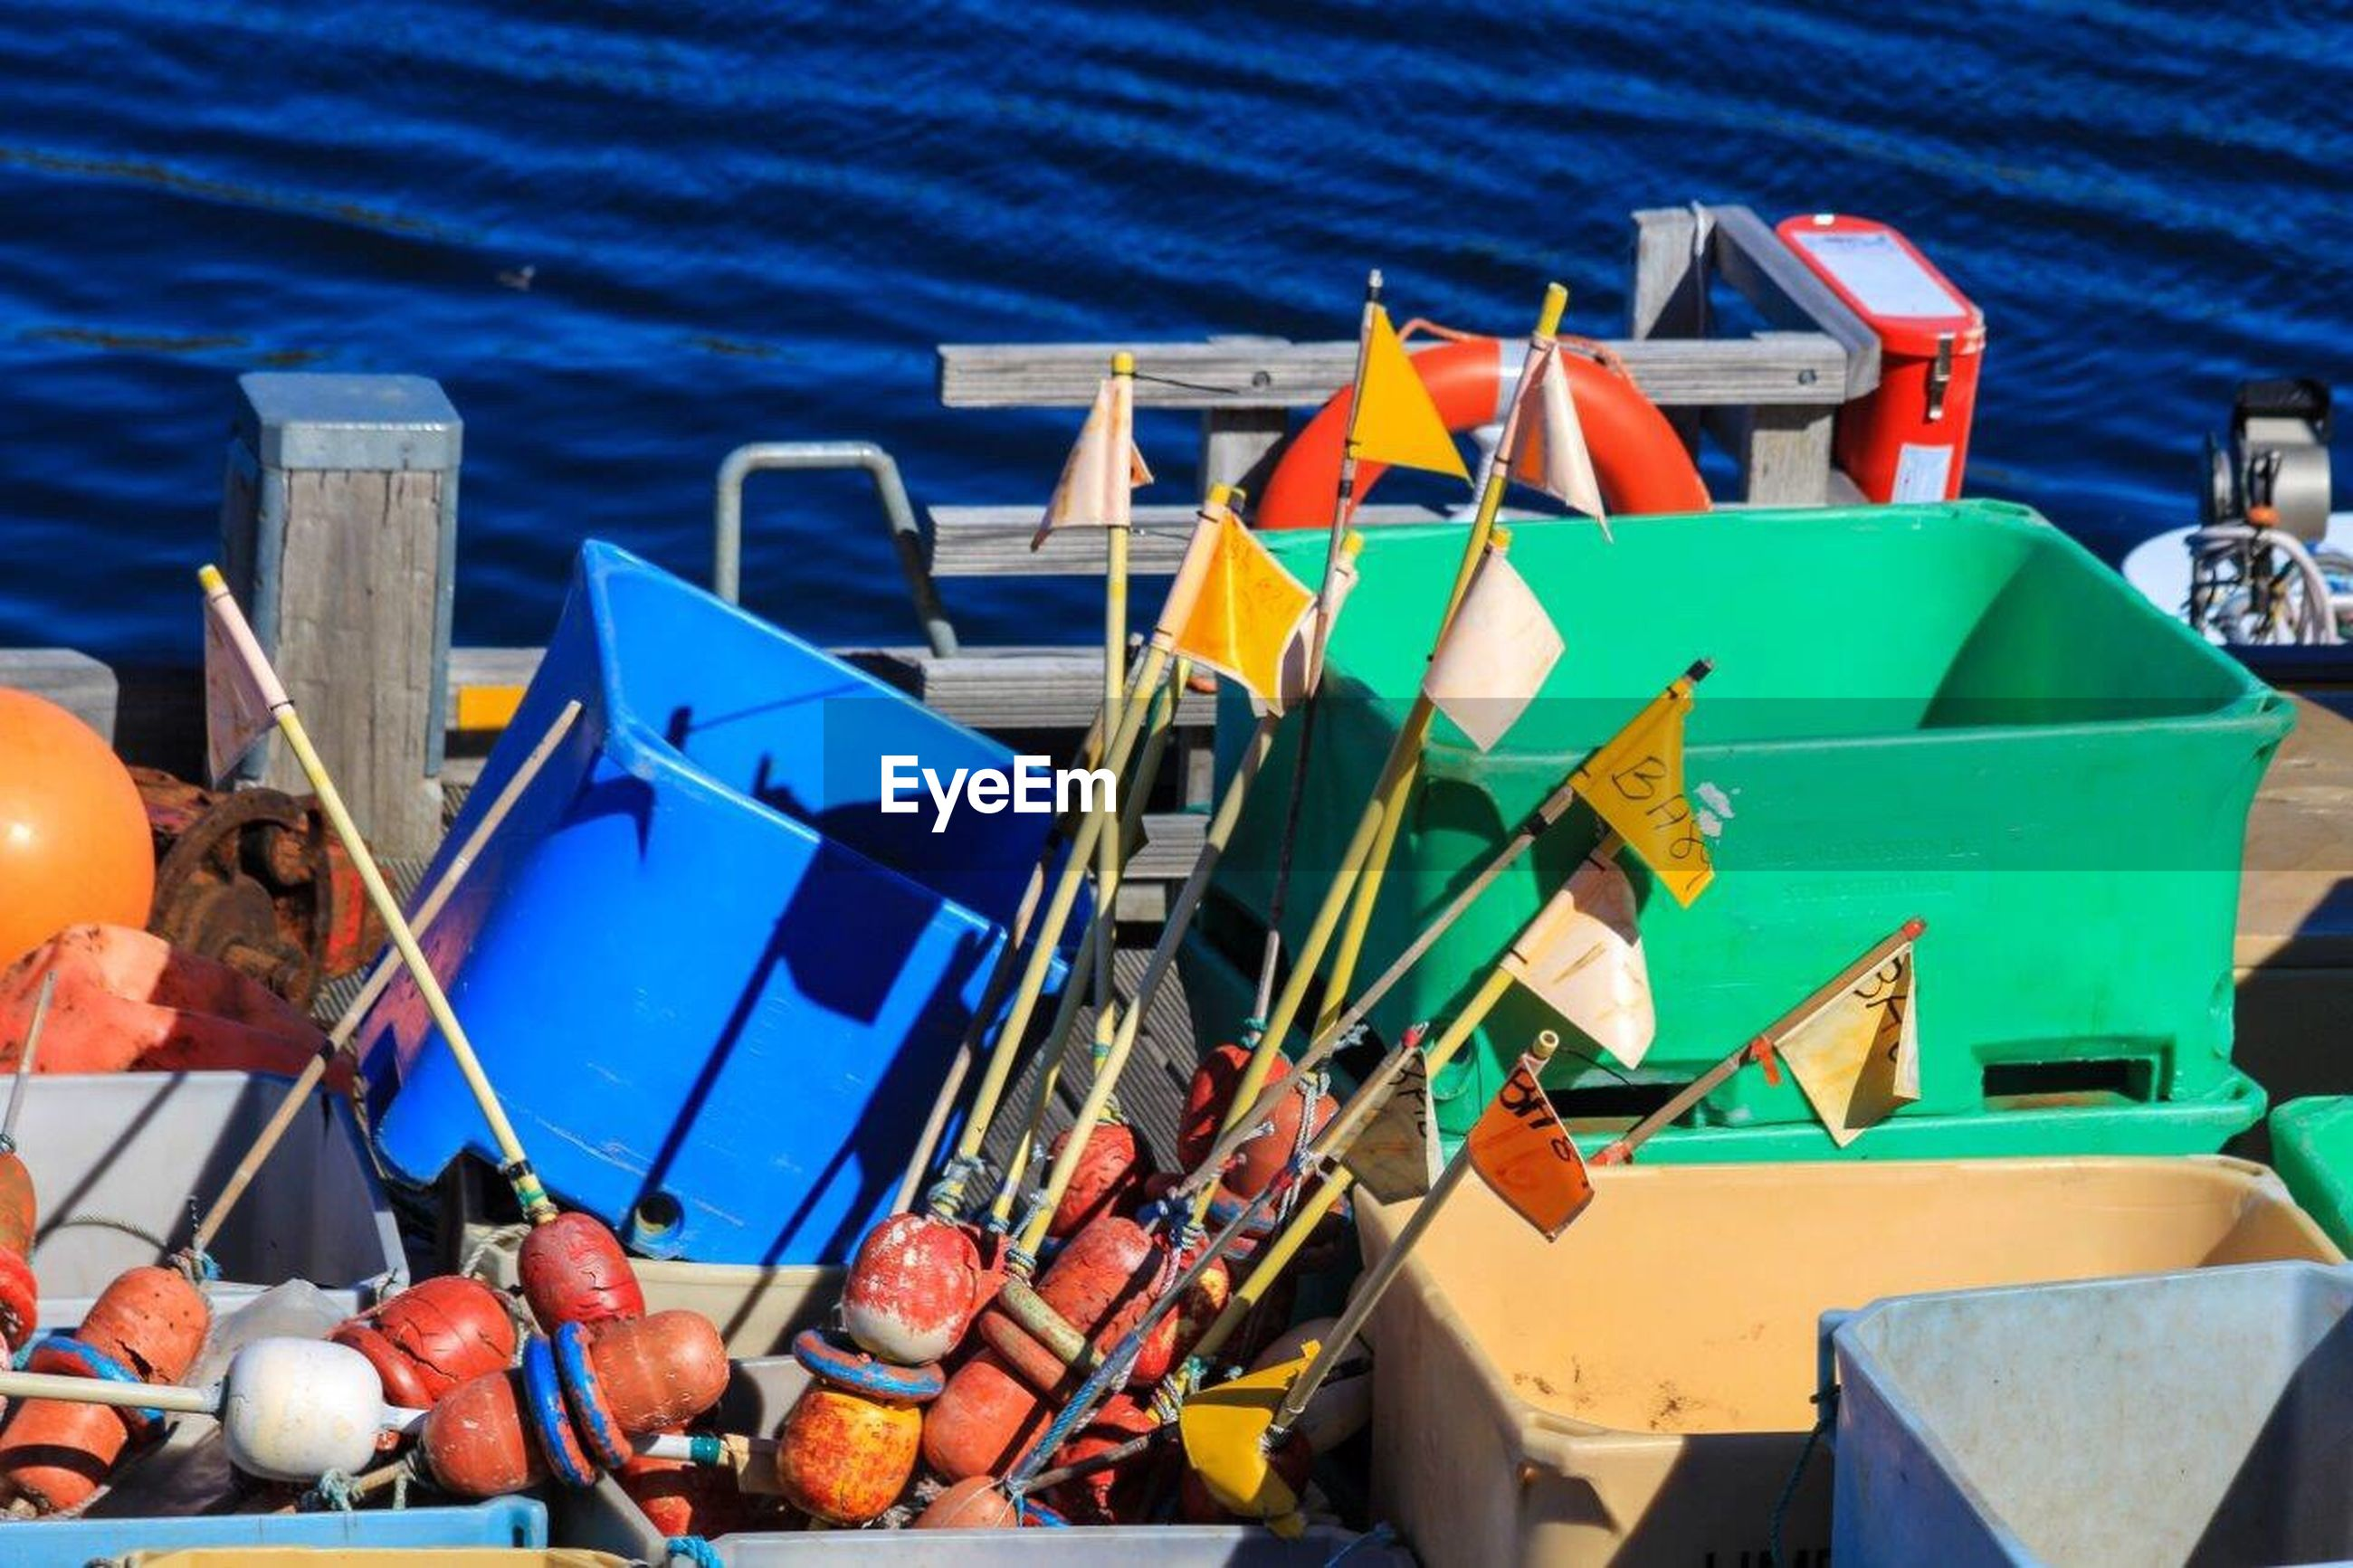 Fishing equipment with containers in boat on sea